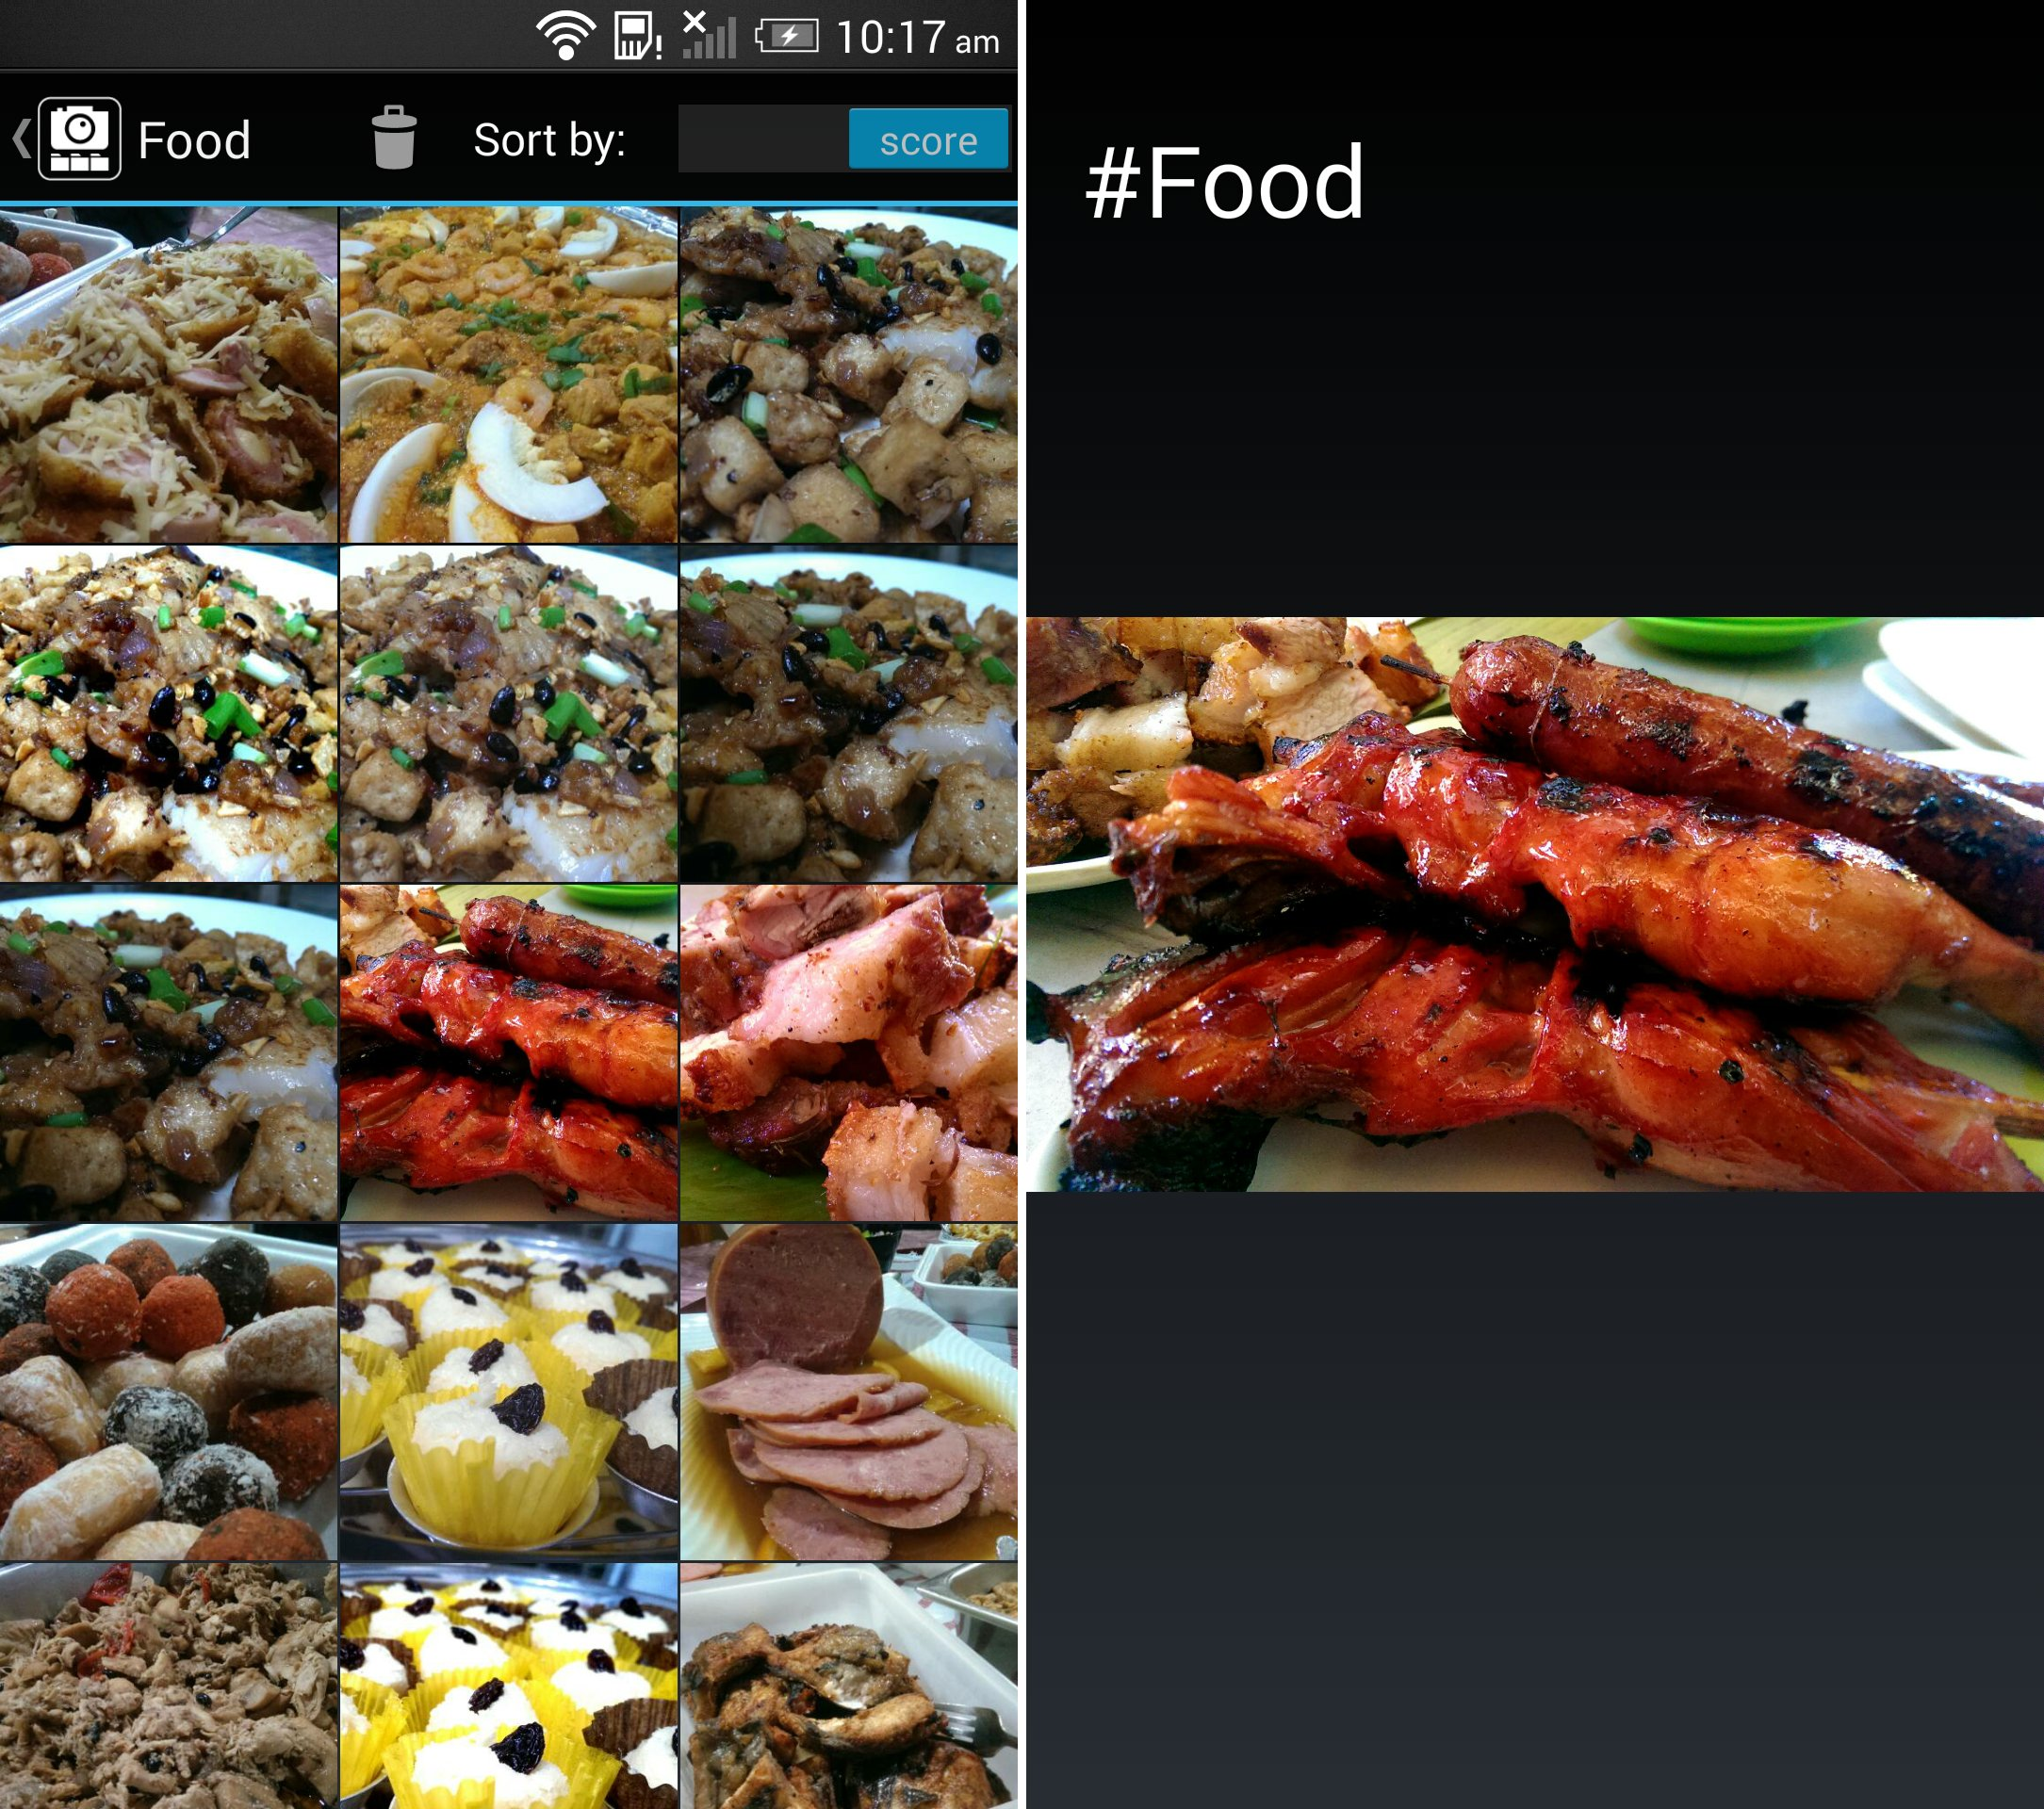 impala-screenshot-food-category